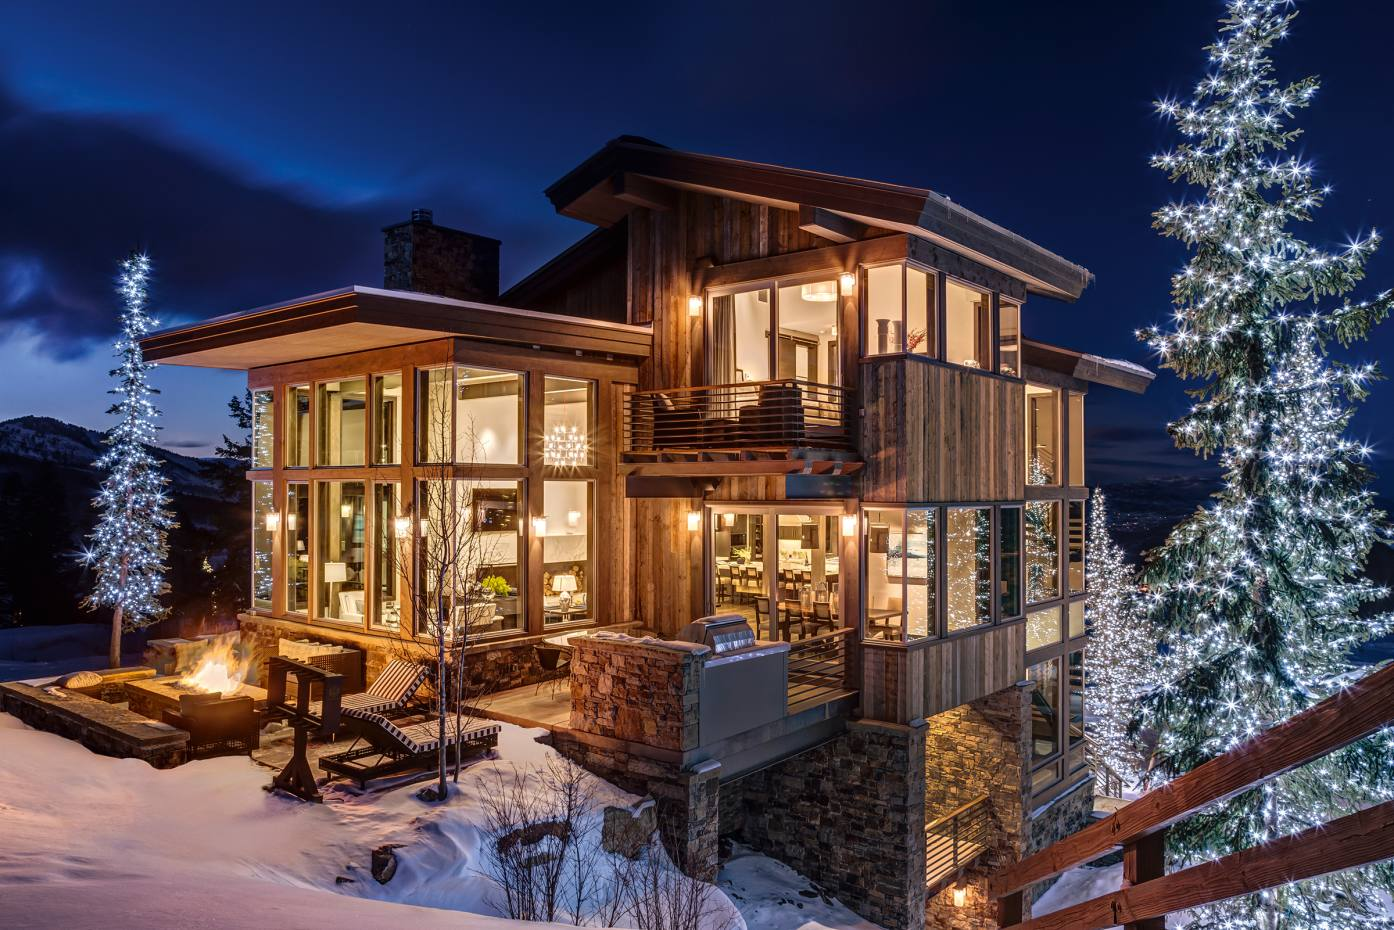 Stein Eriksen Lodge in Utah has added several new residences with state-of-the-art entertainment rooms